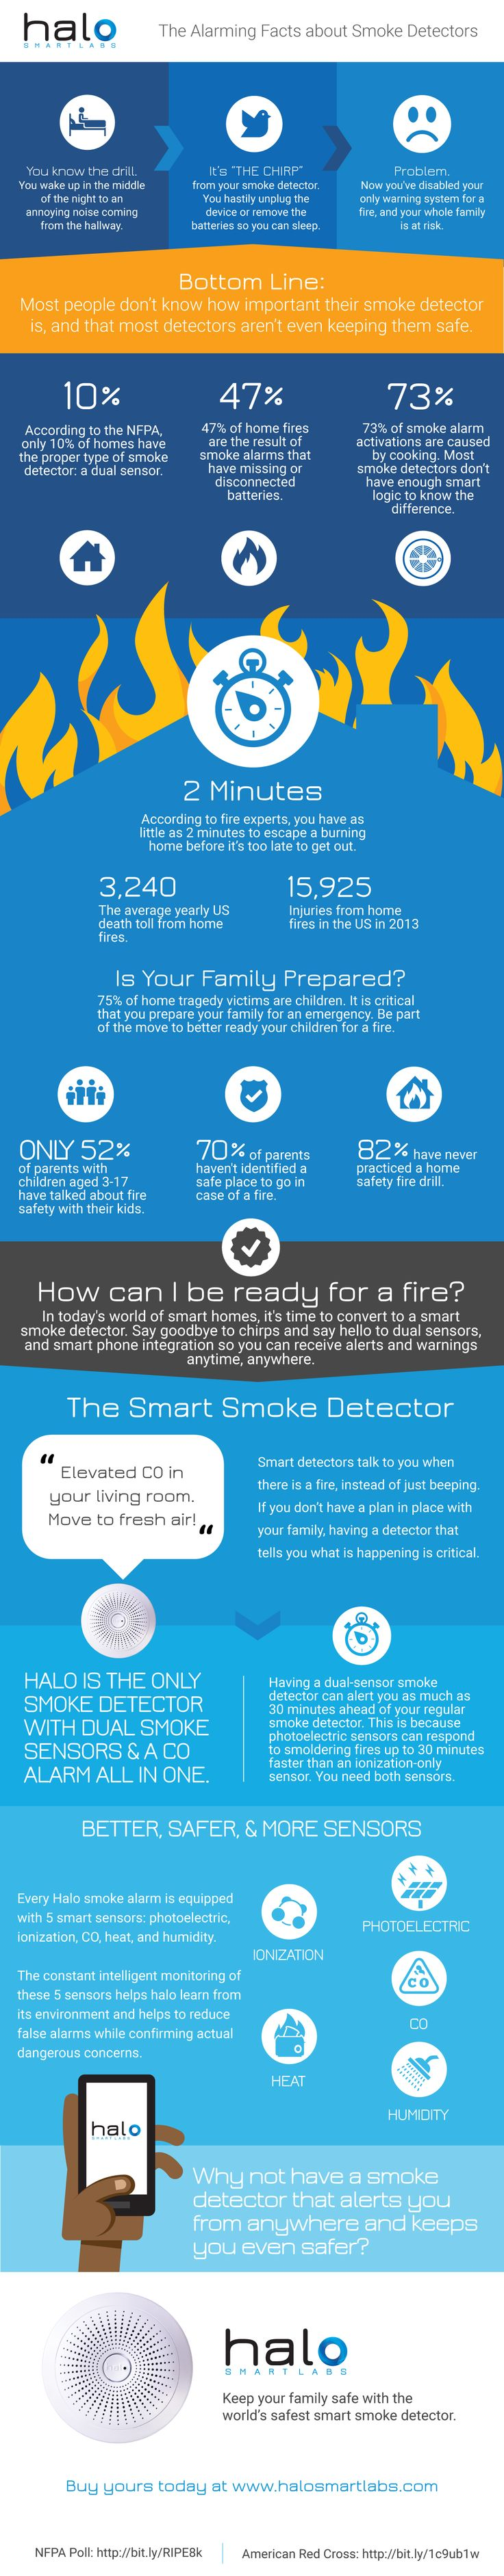 Halo Infographic Alarming Facts about Smoke Detectors